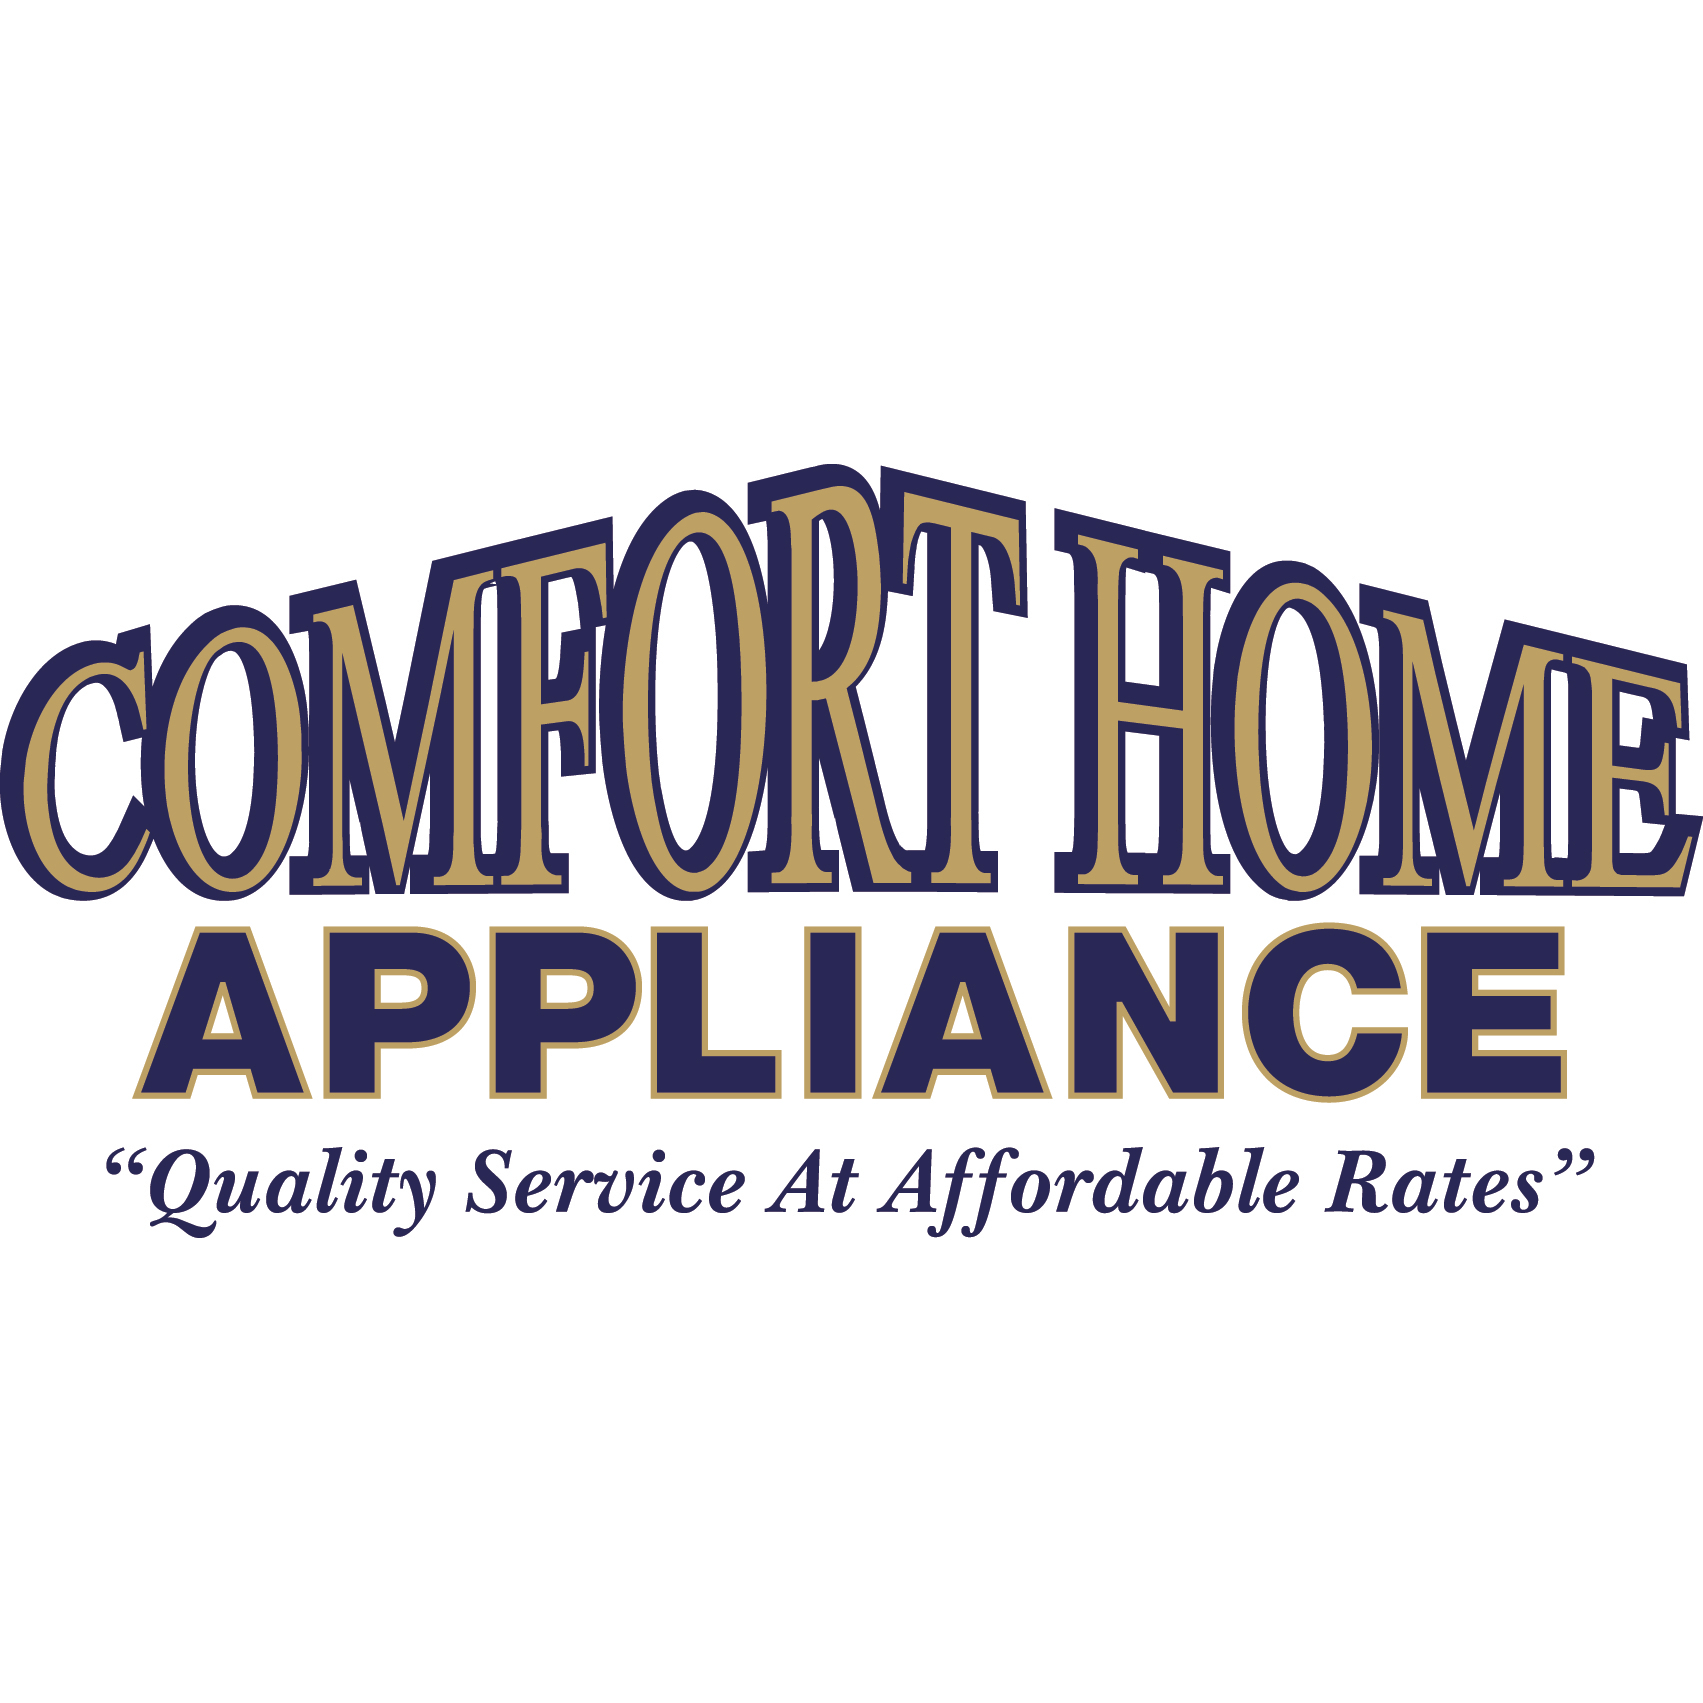 Comfort Home Appliance Coupons Near Me In Las Vegas 8coupons